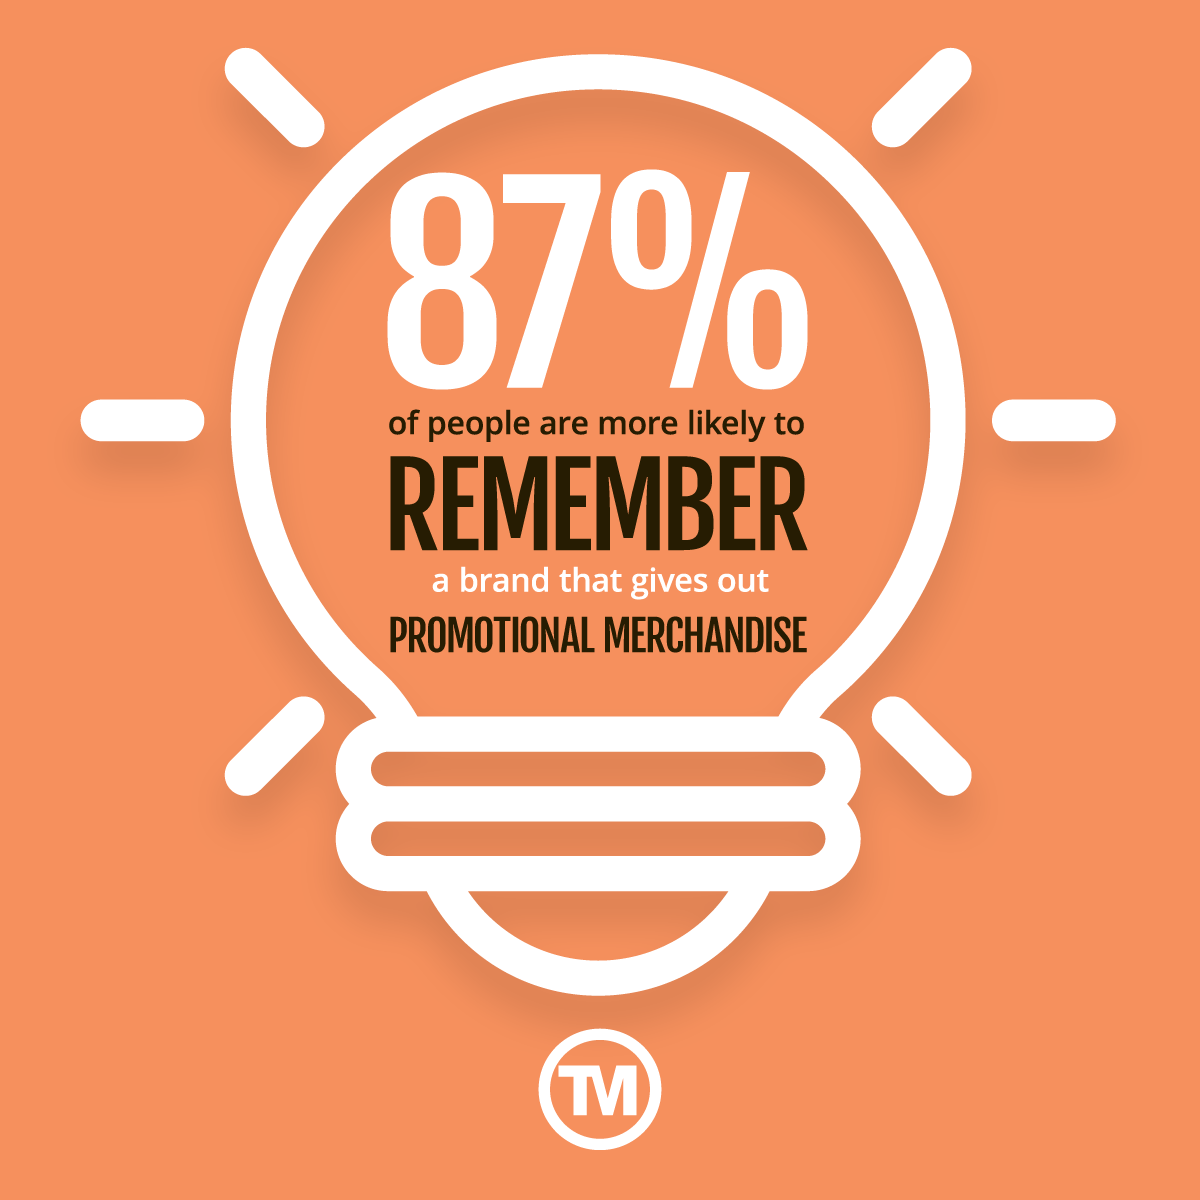 87% of people are more likely to remember a brand that gives out promotional merchandise